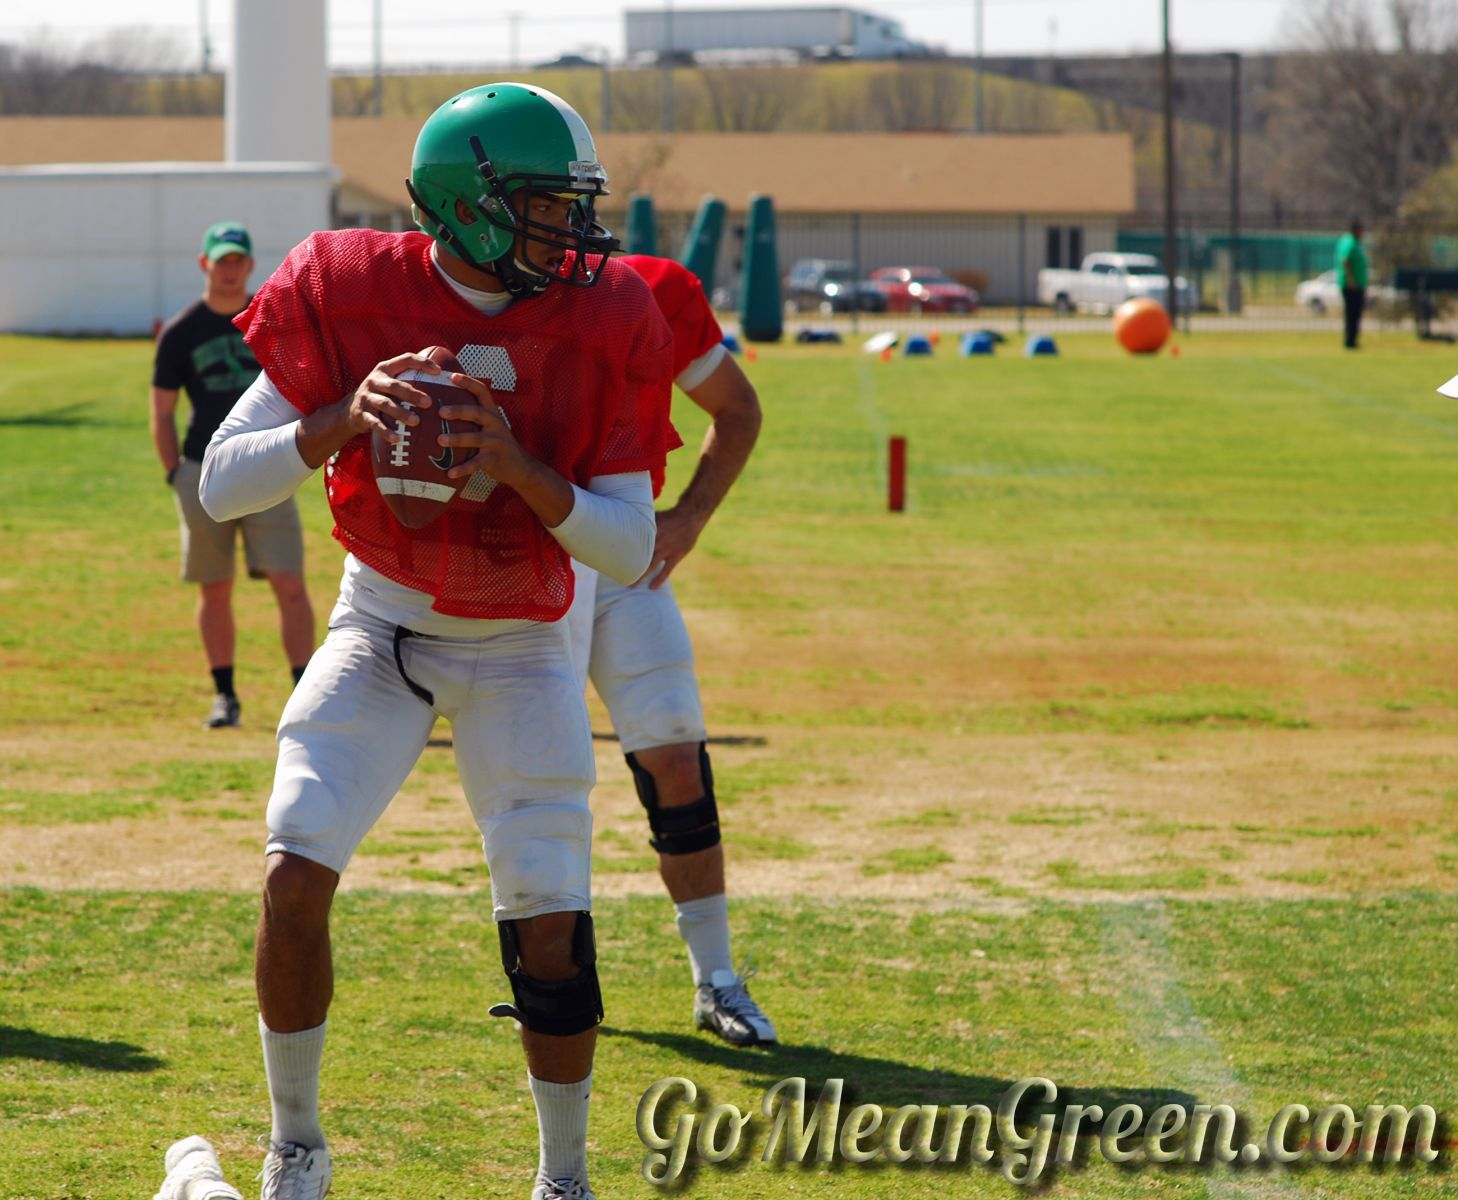 UNT QB DaJon Williams looks For receiver